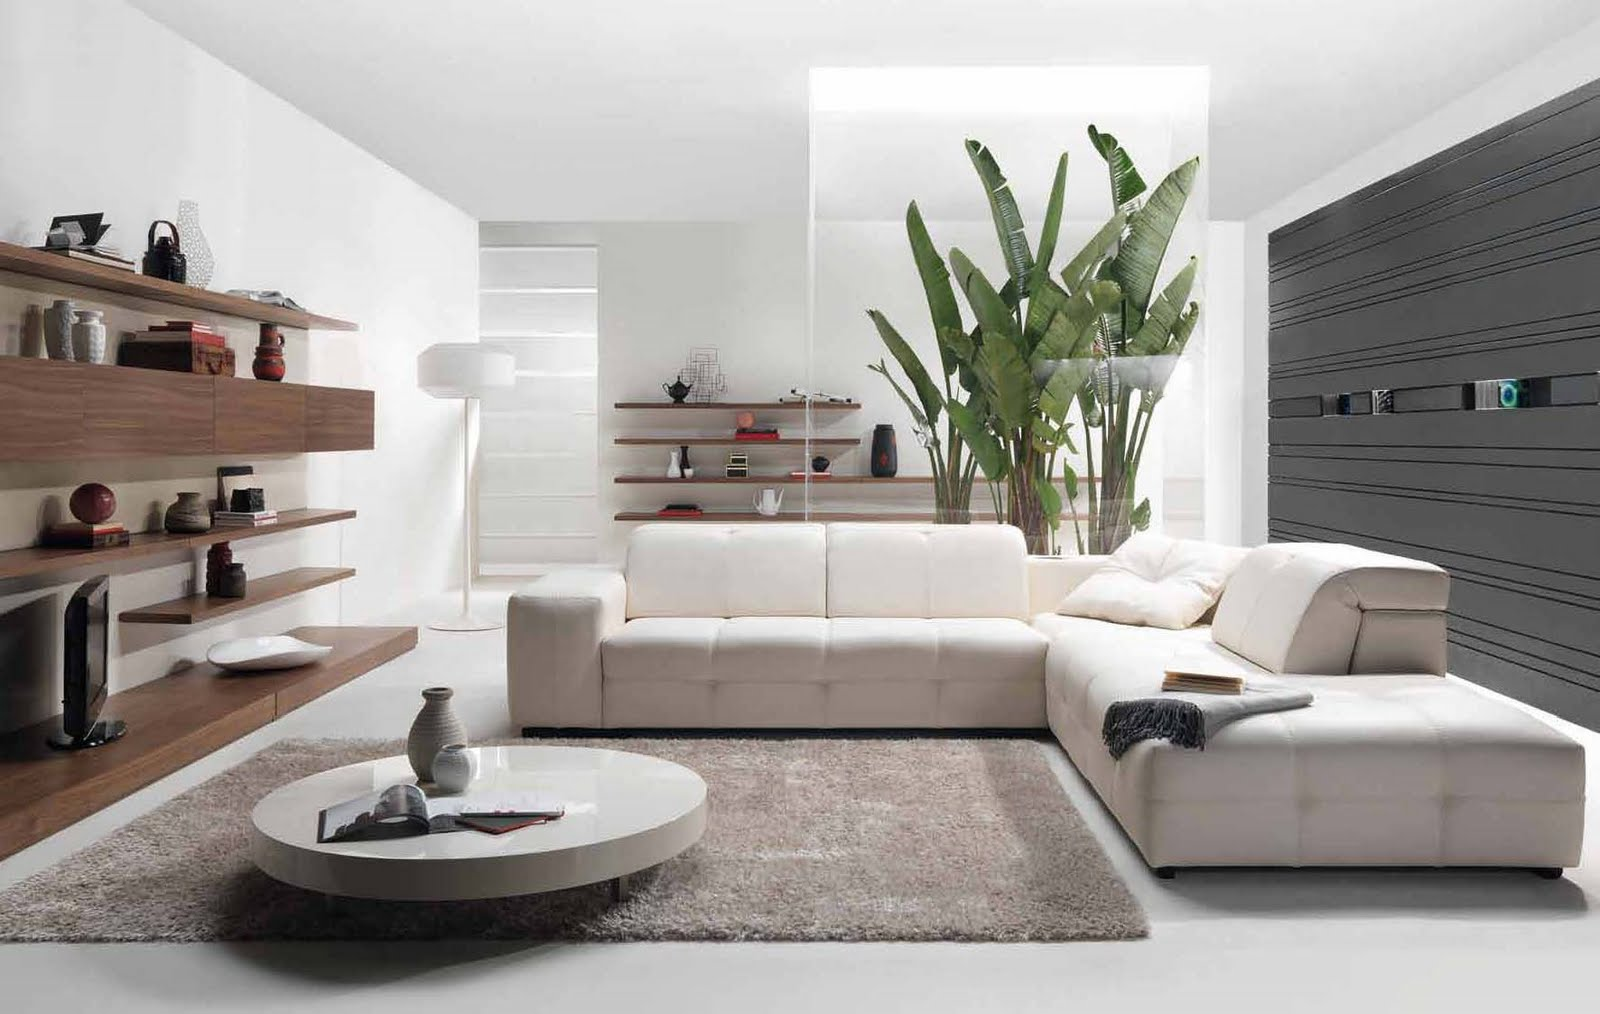 Future house design modern living room interior design styles 2010 by natuzzi - Interior design living room styles ...